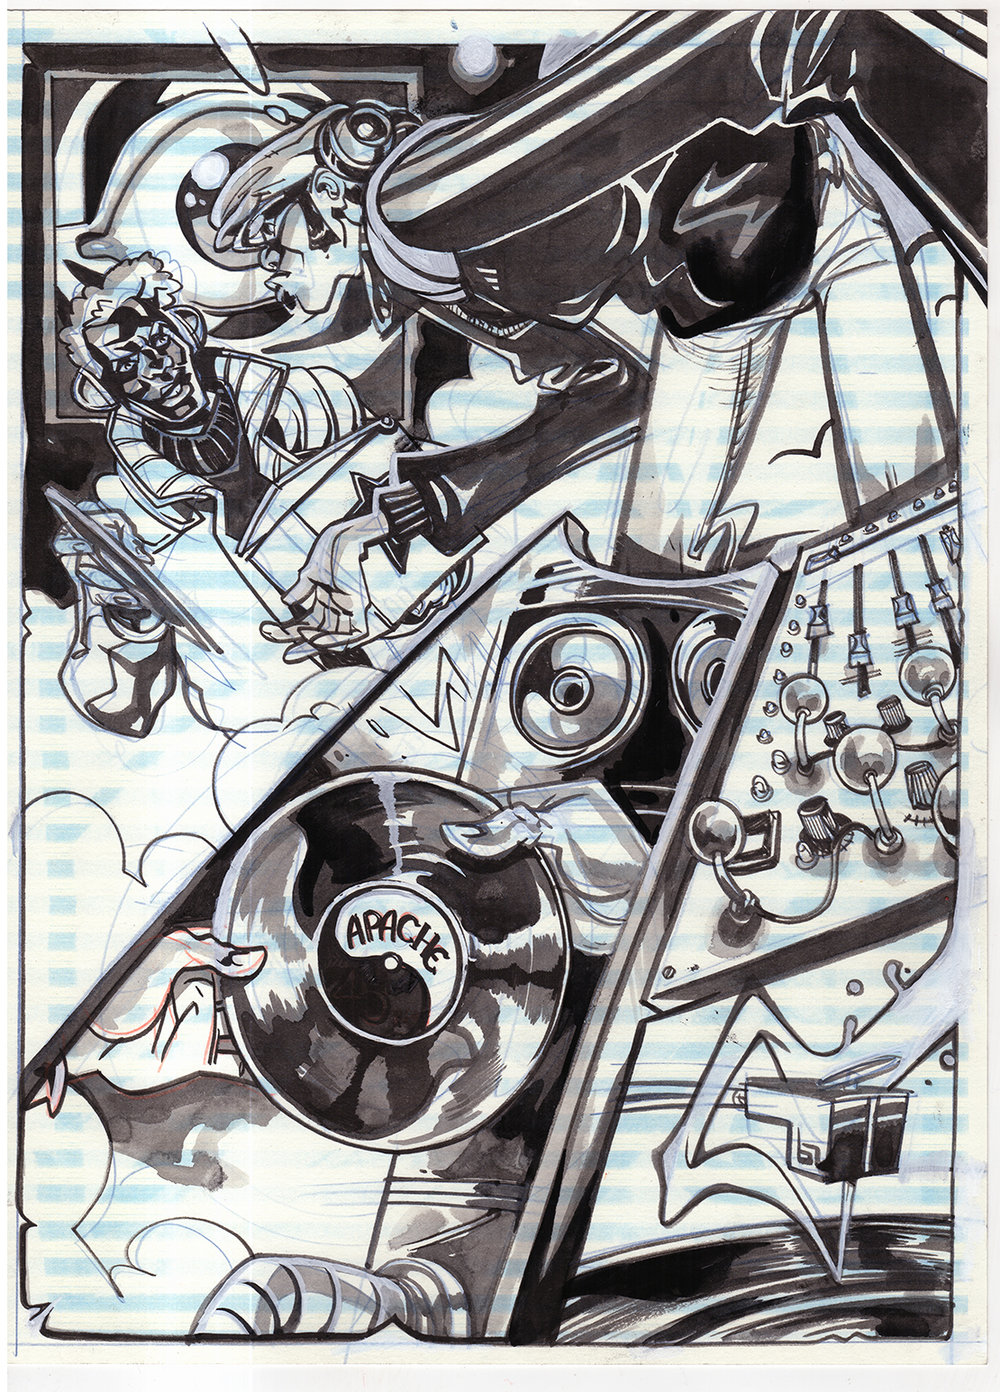 Black Star pages by Chris Visions -